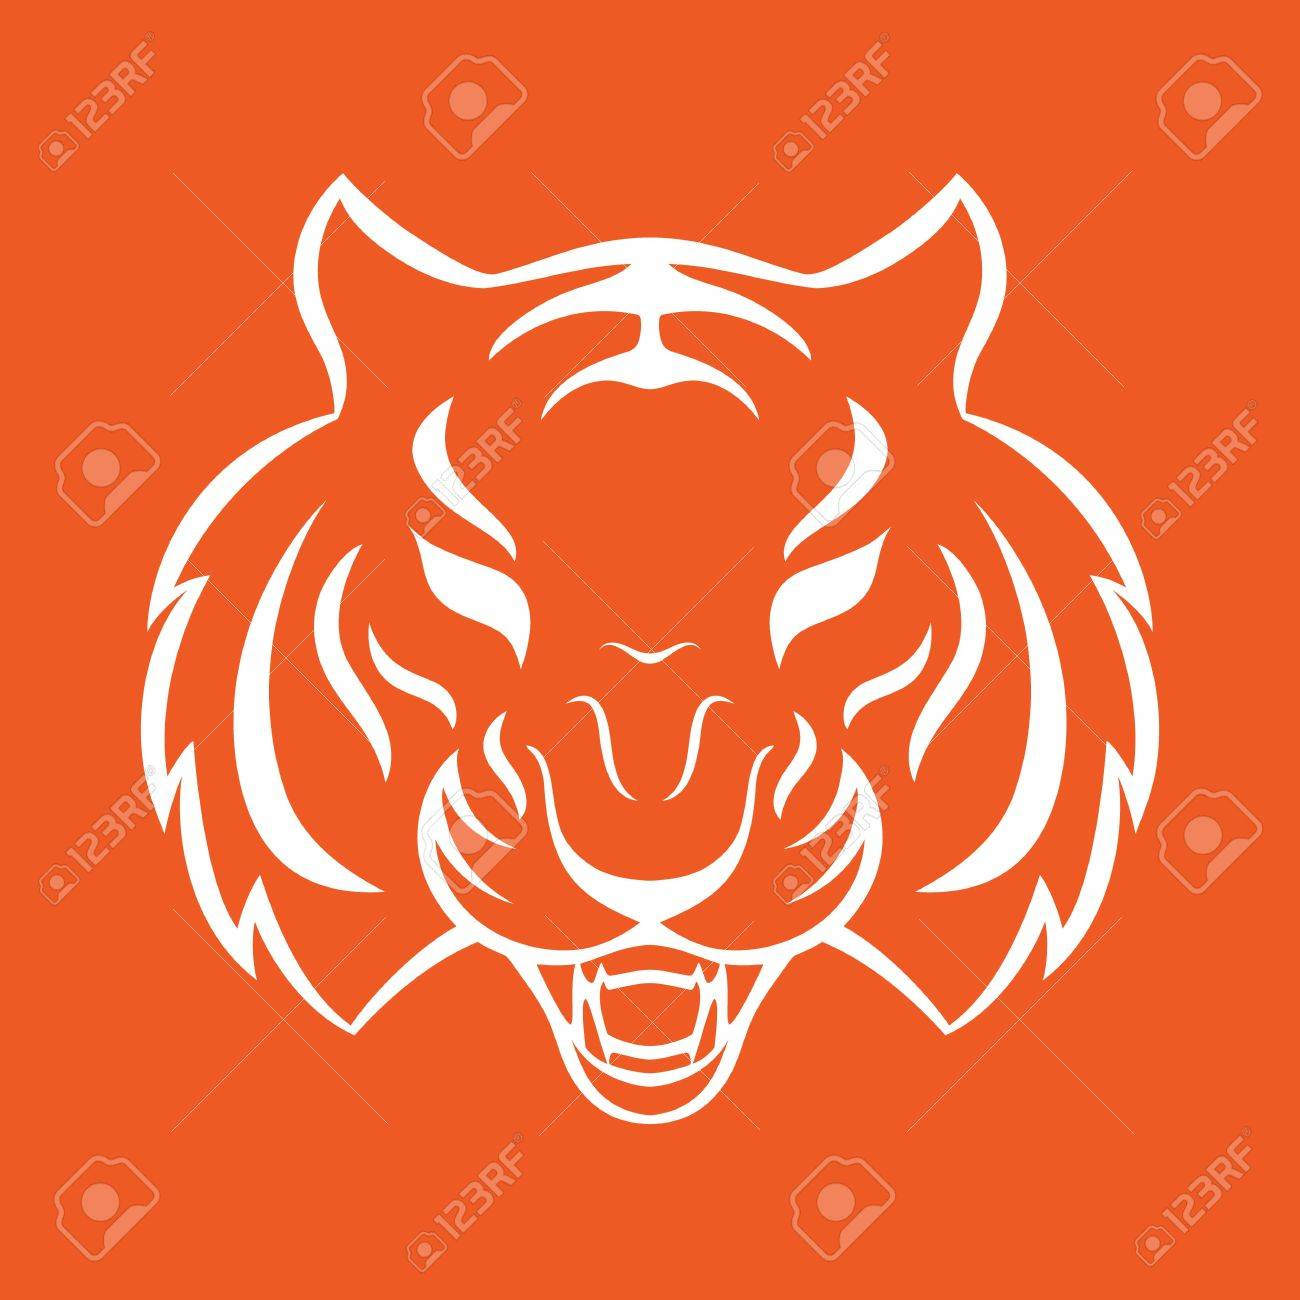 0b14dea1fd01a Tiger icon isolated on a white background. Tiger logo template, tattoo  design, t